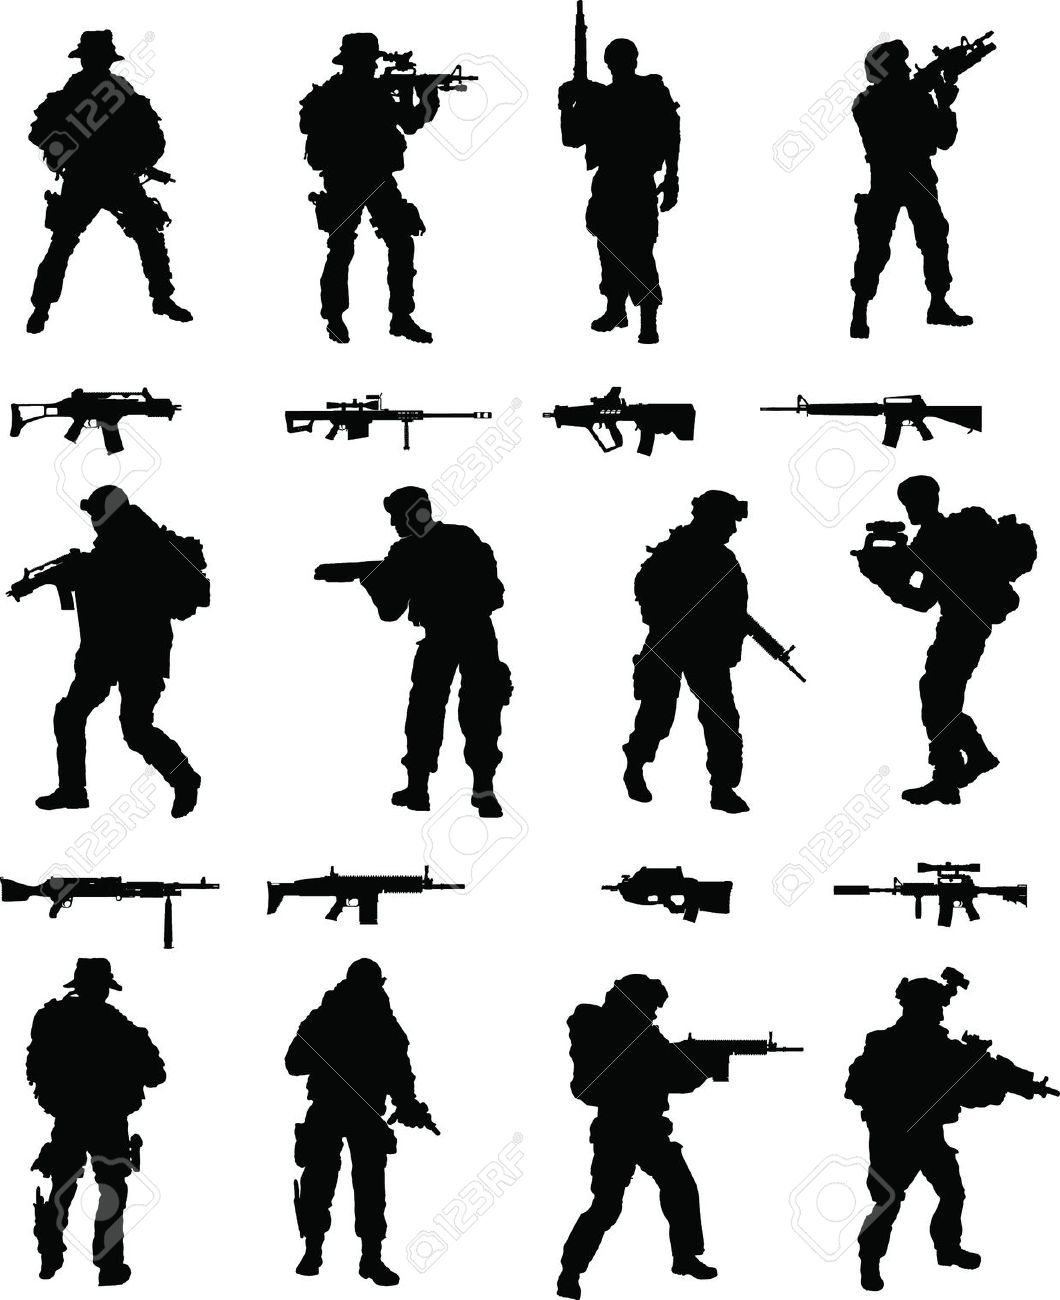 Silhouettes Military Cliparts Stock Vector And Royalty